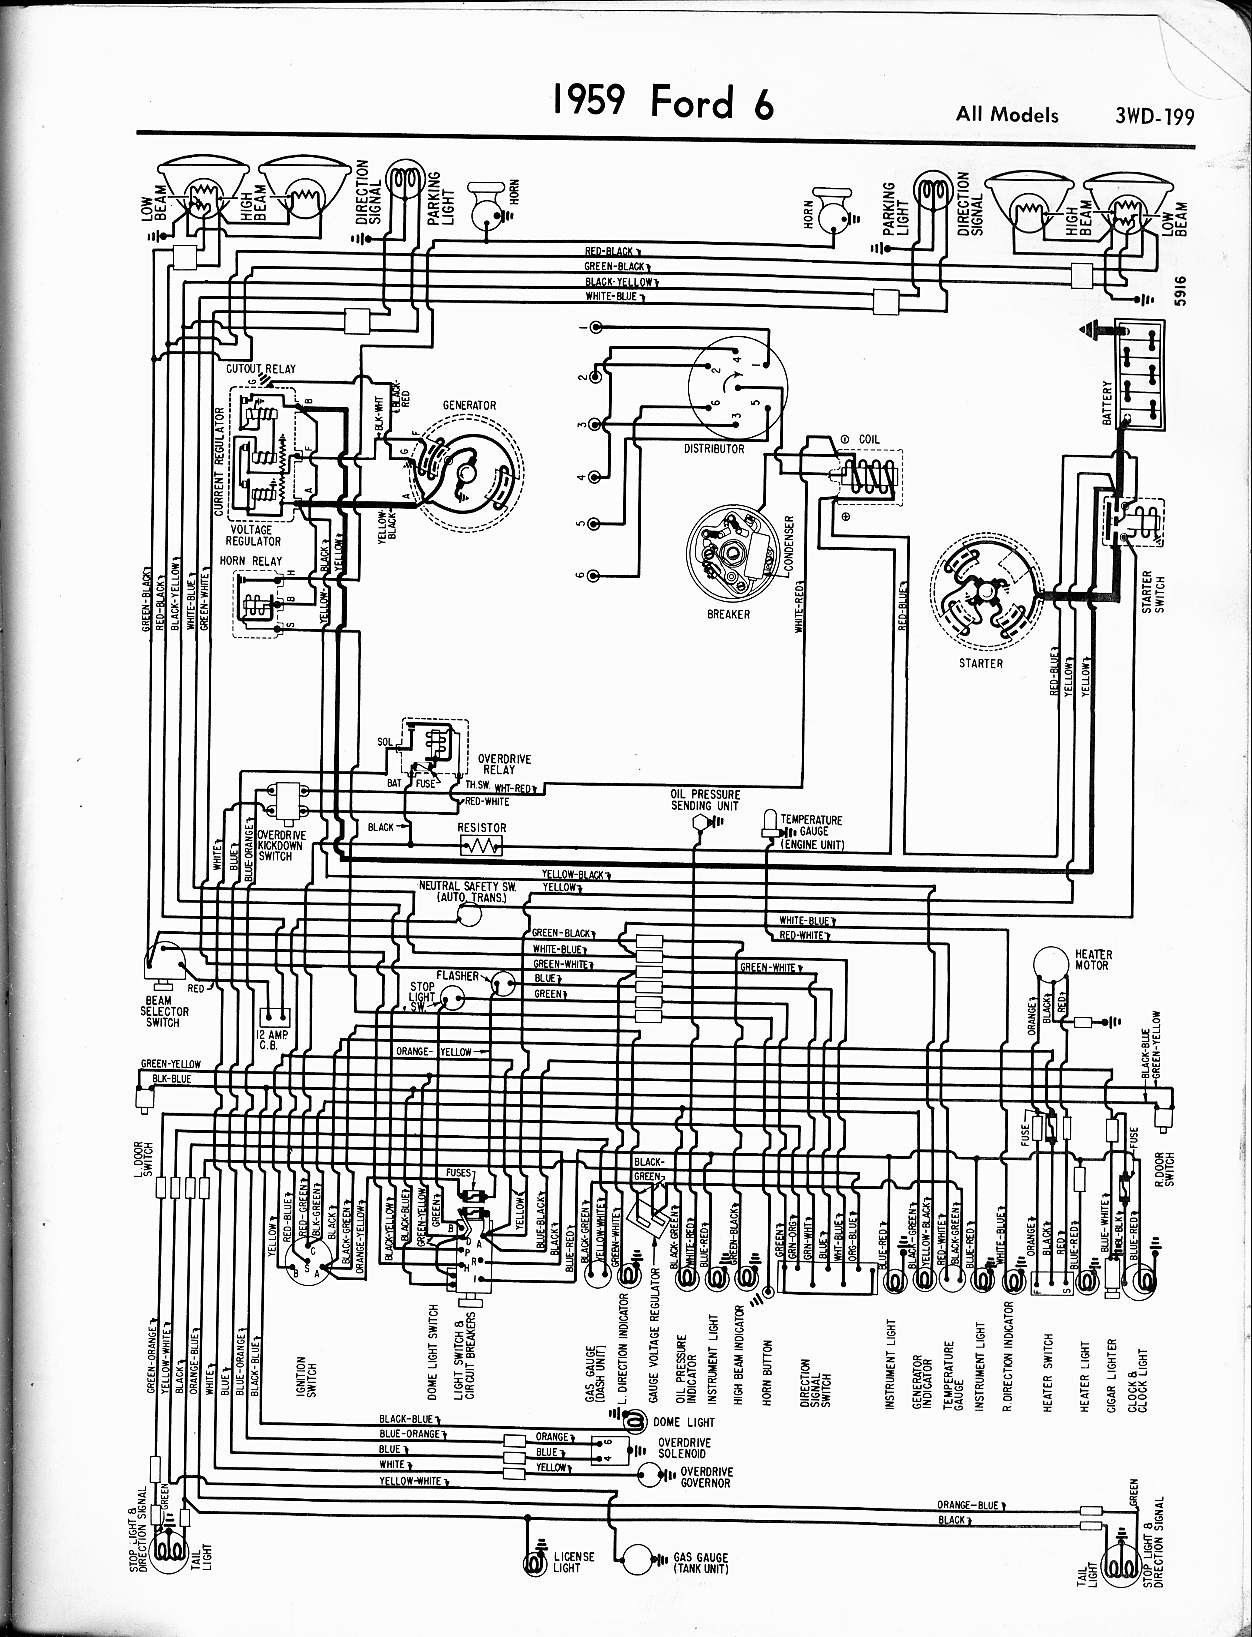 Stewart Warner Gas Gauge Wiring Trusted Diagrams Fuel Diagram 1966 Ford F 100 Electricity